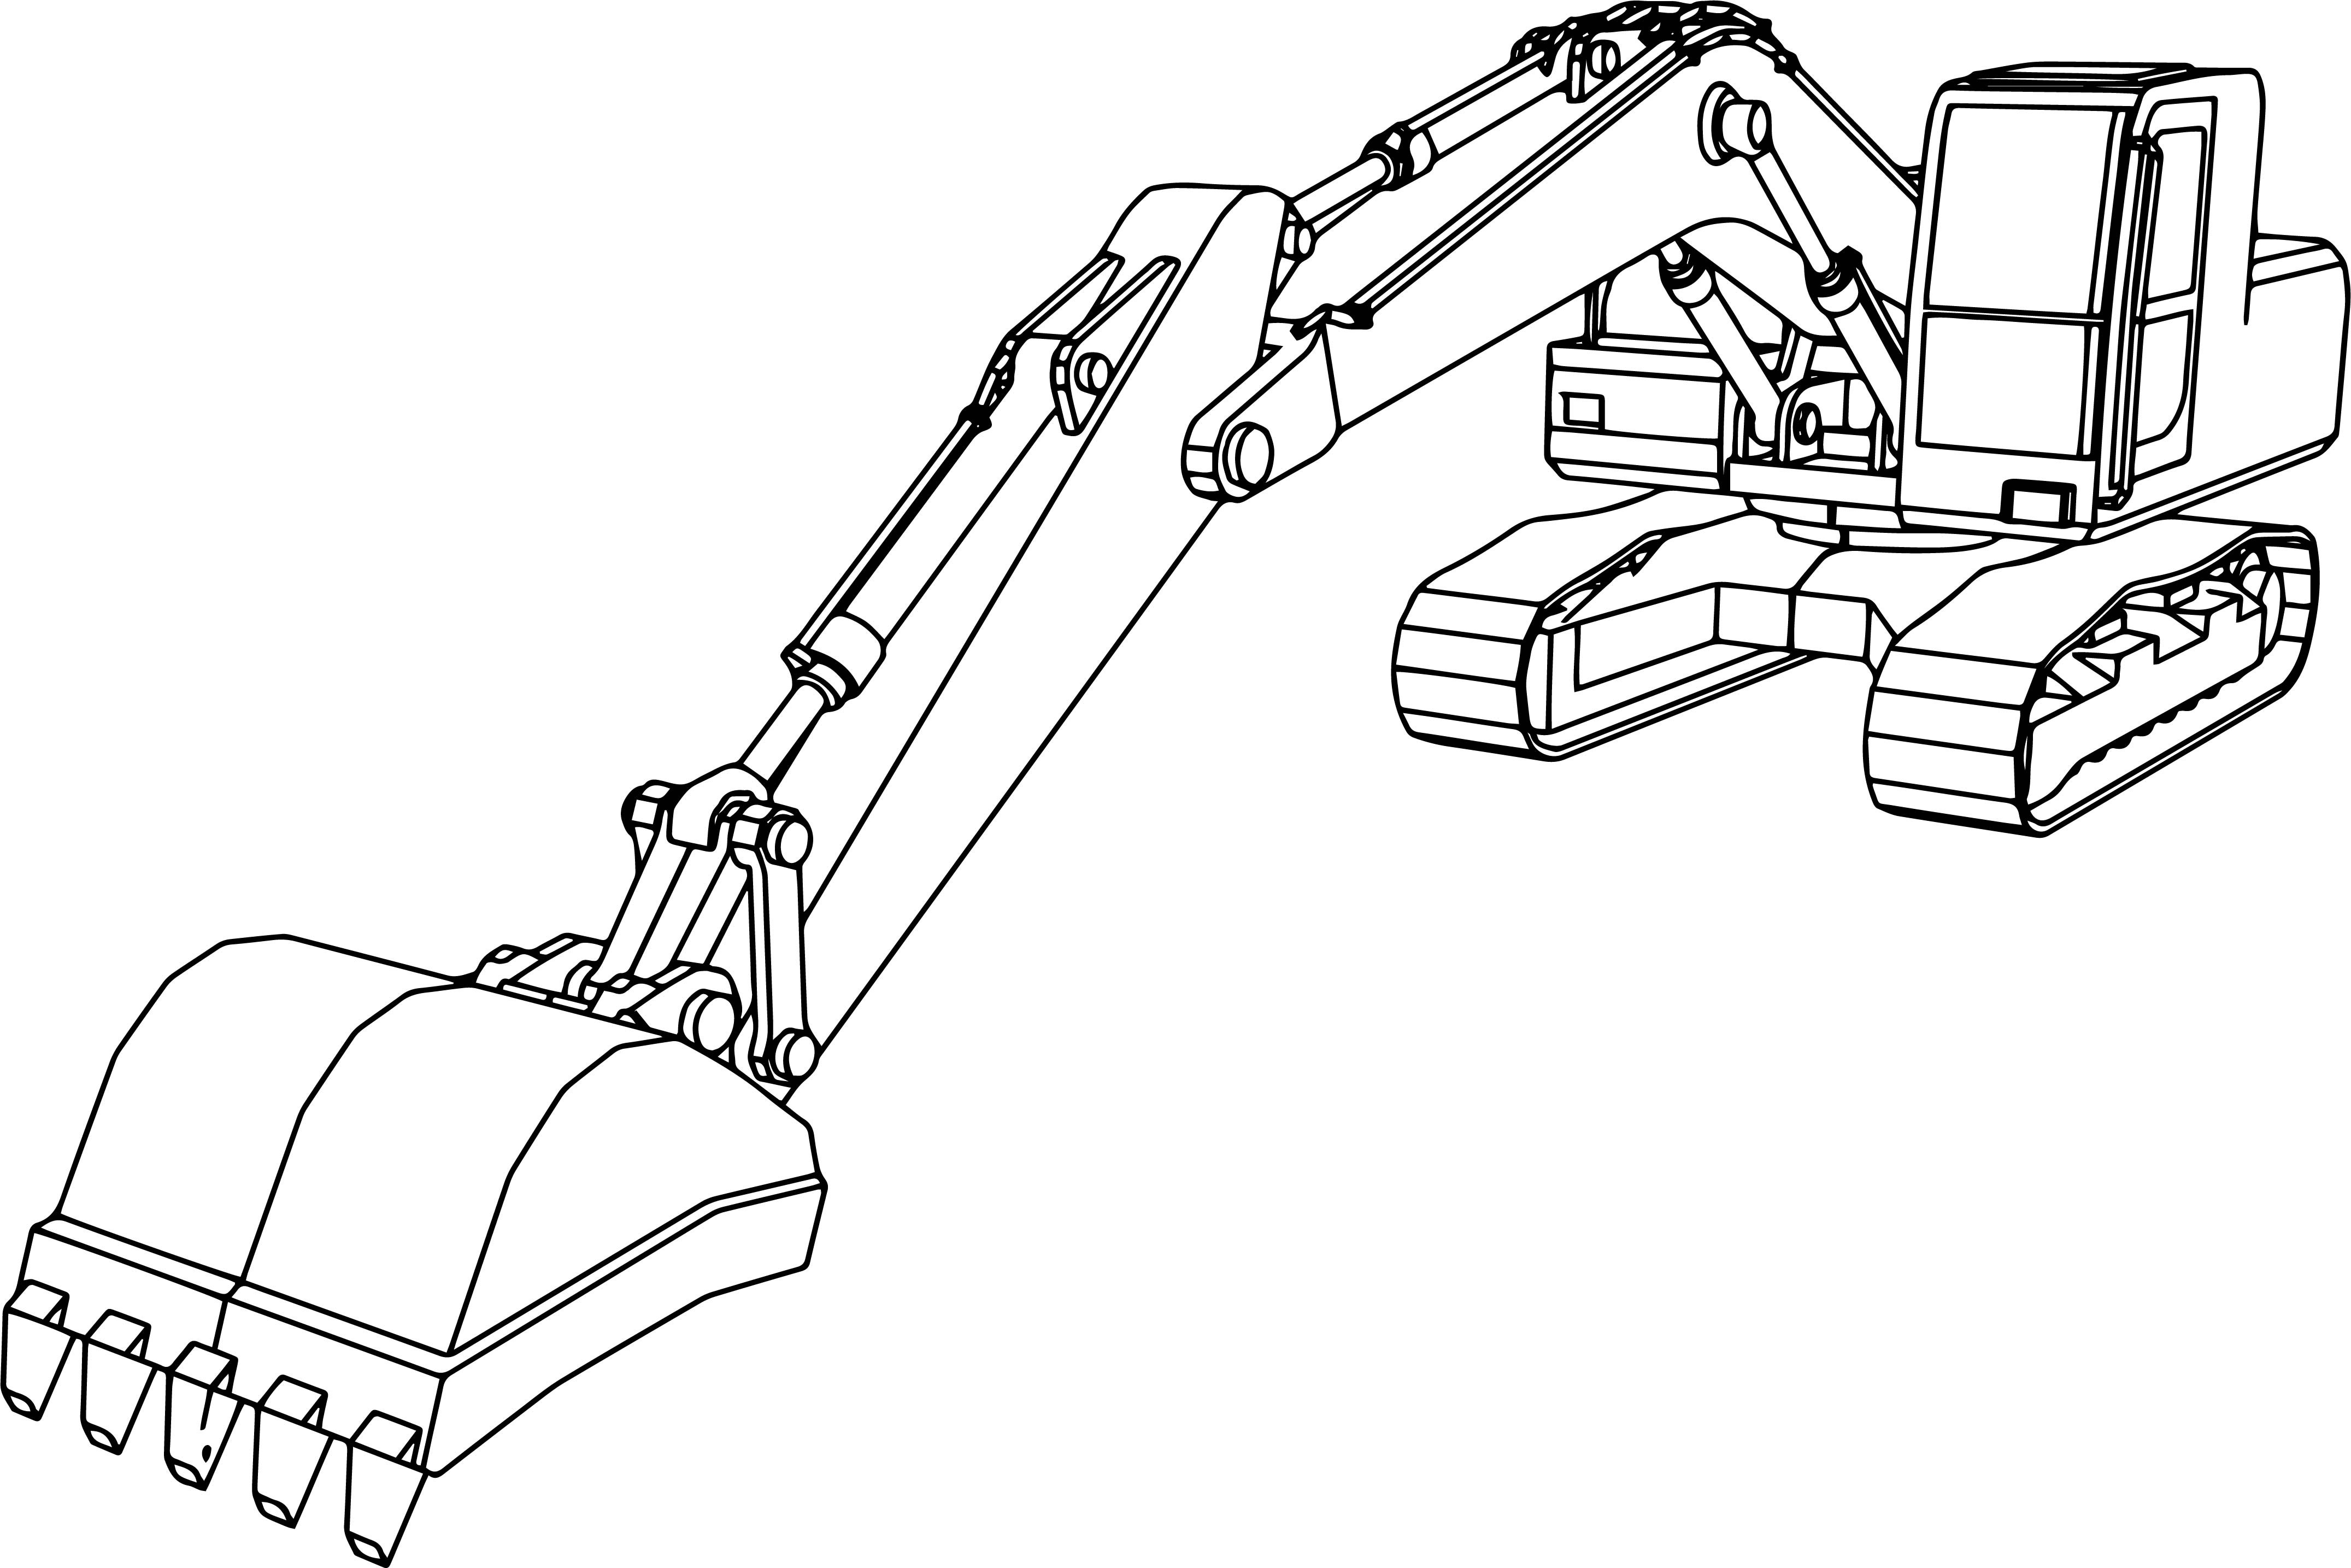 Excavator Coloring Pages  Big Excavator Coloring Page